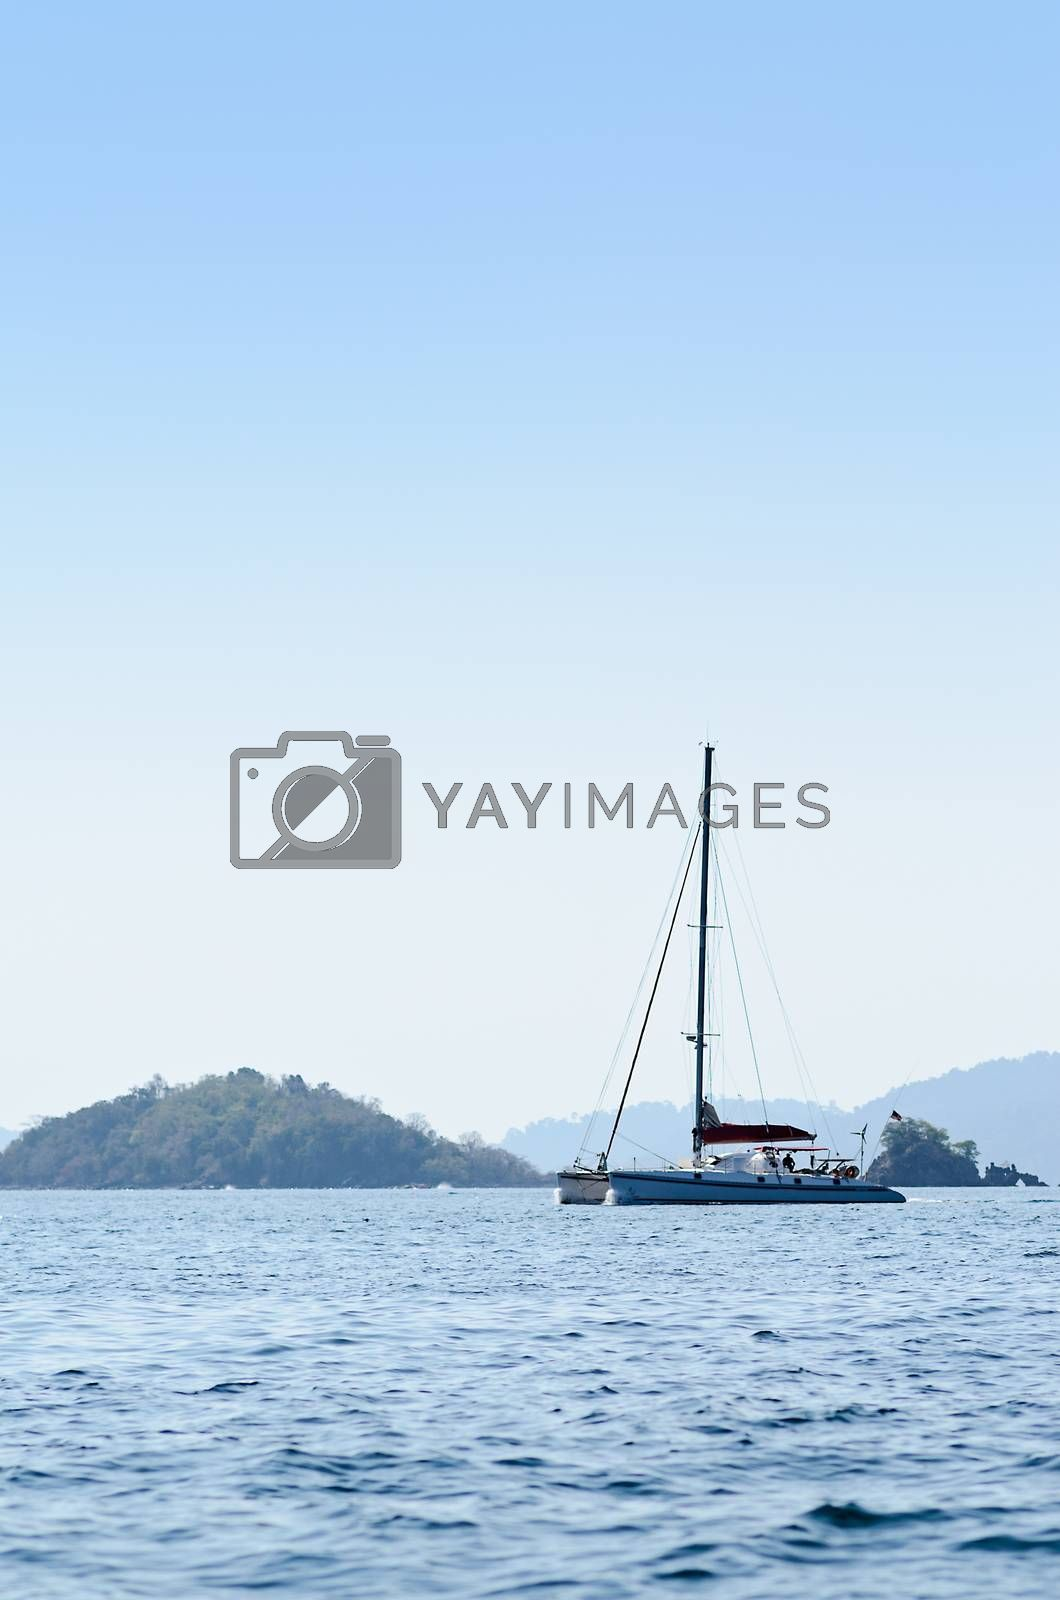 Royalty free image of Yatch in the blue sea in Thailand by hatoriz